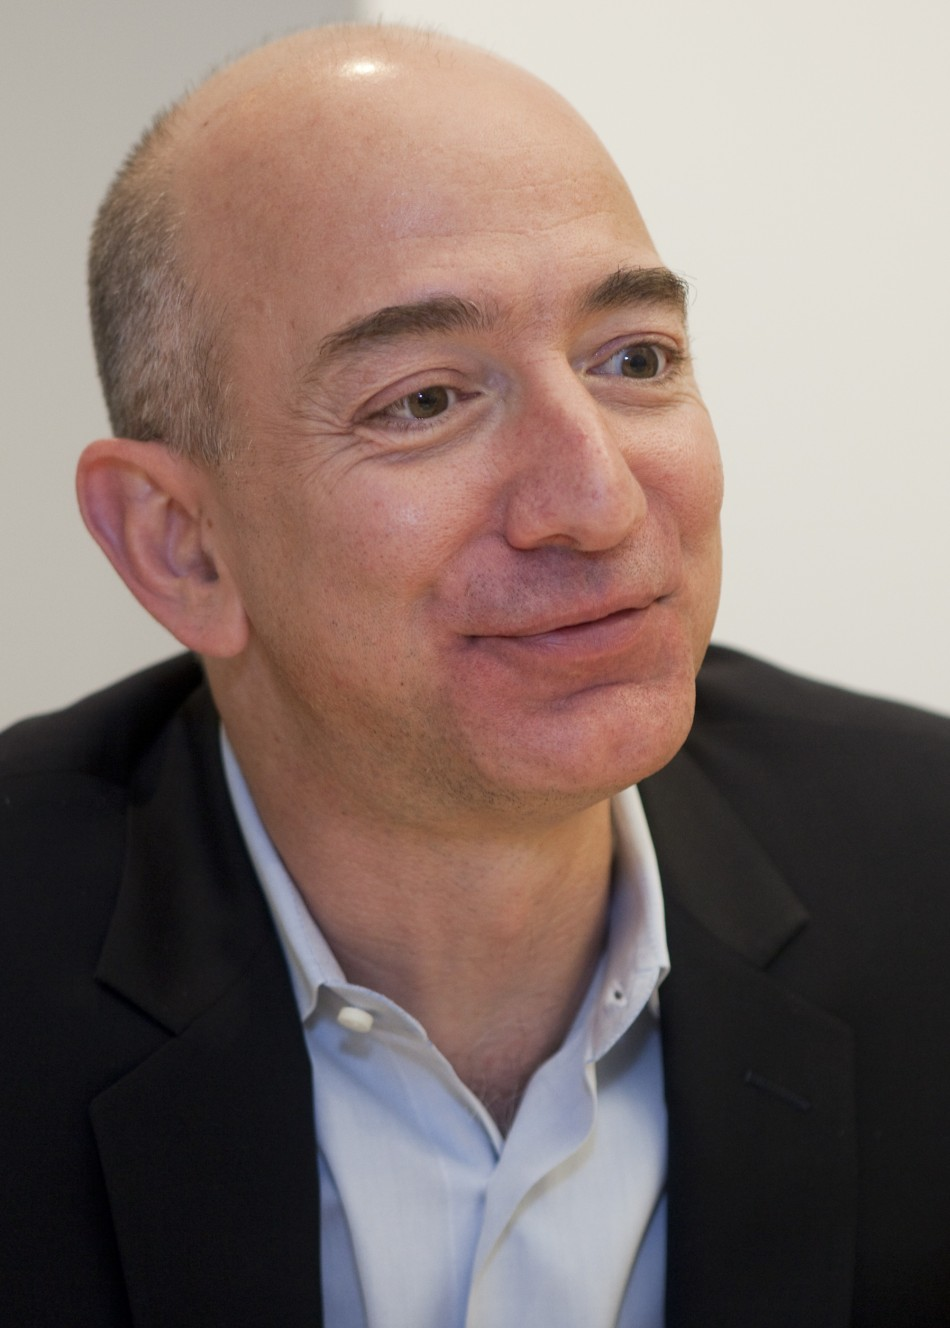 Amazon Founder, CEO Jeff Bezos